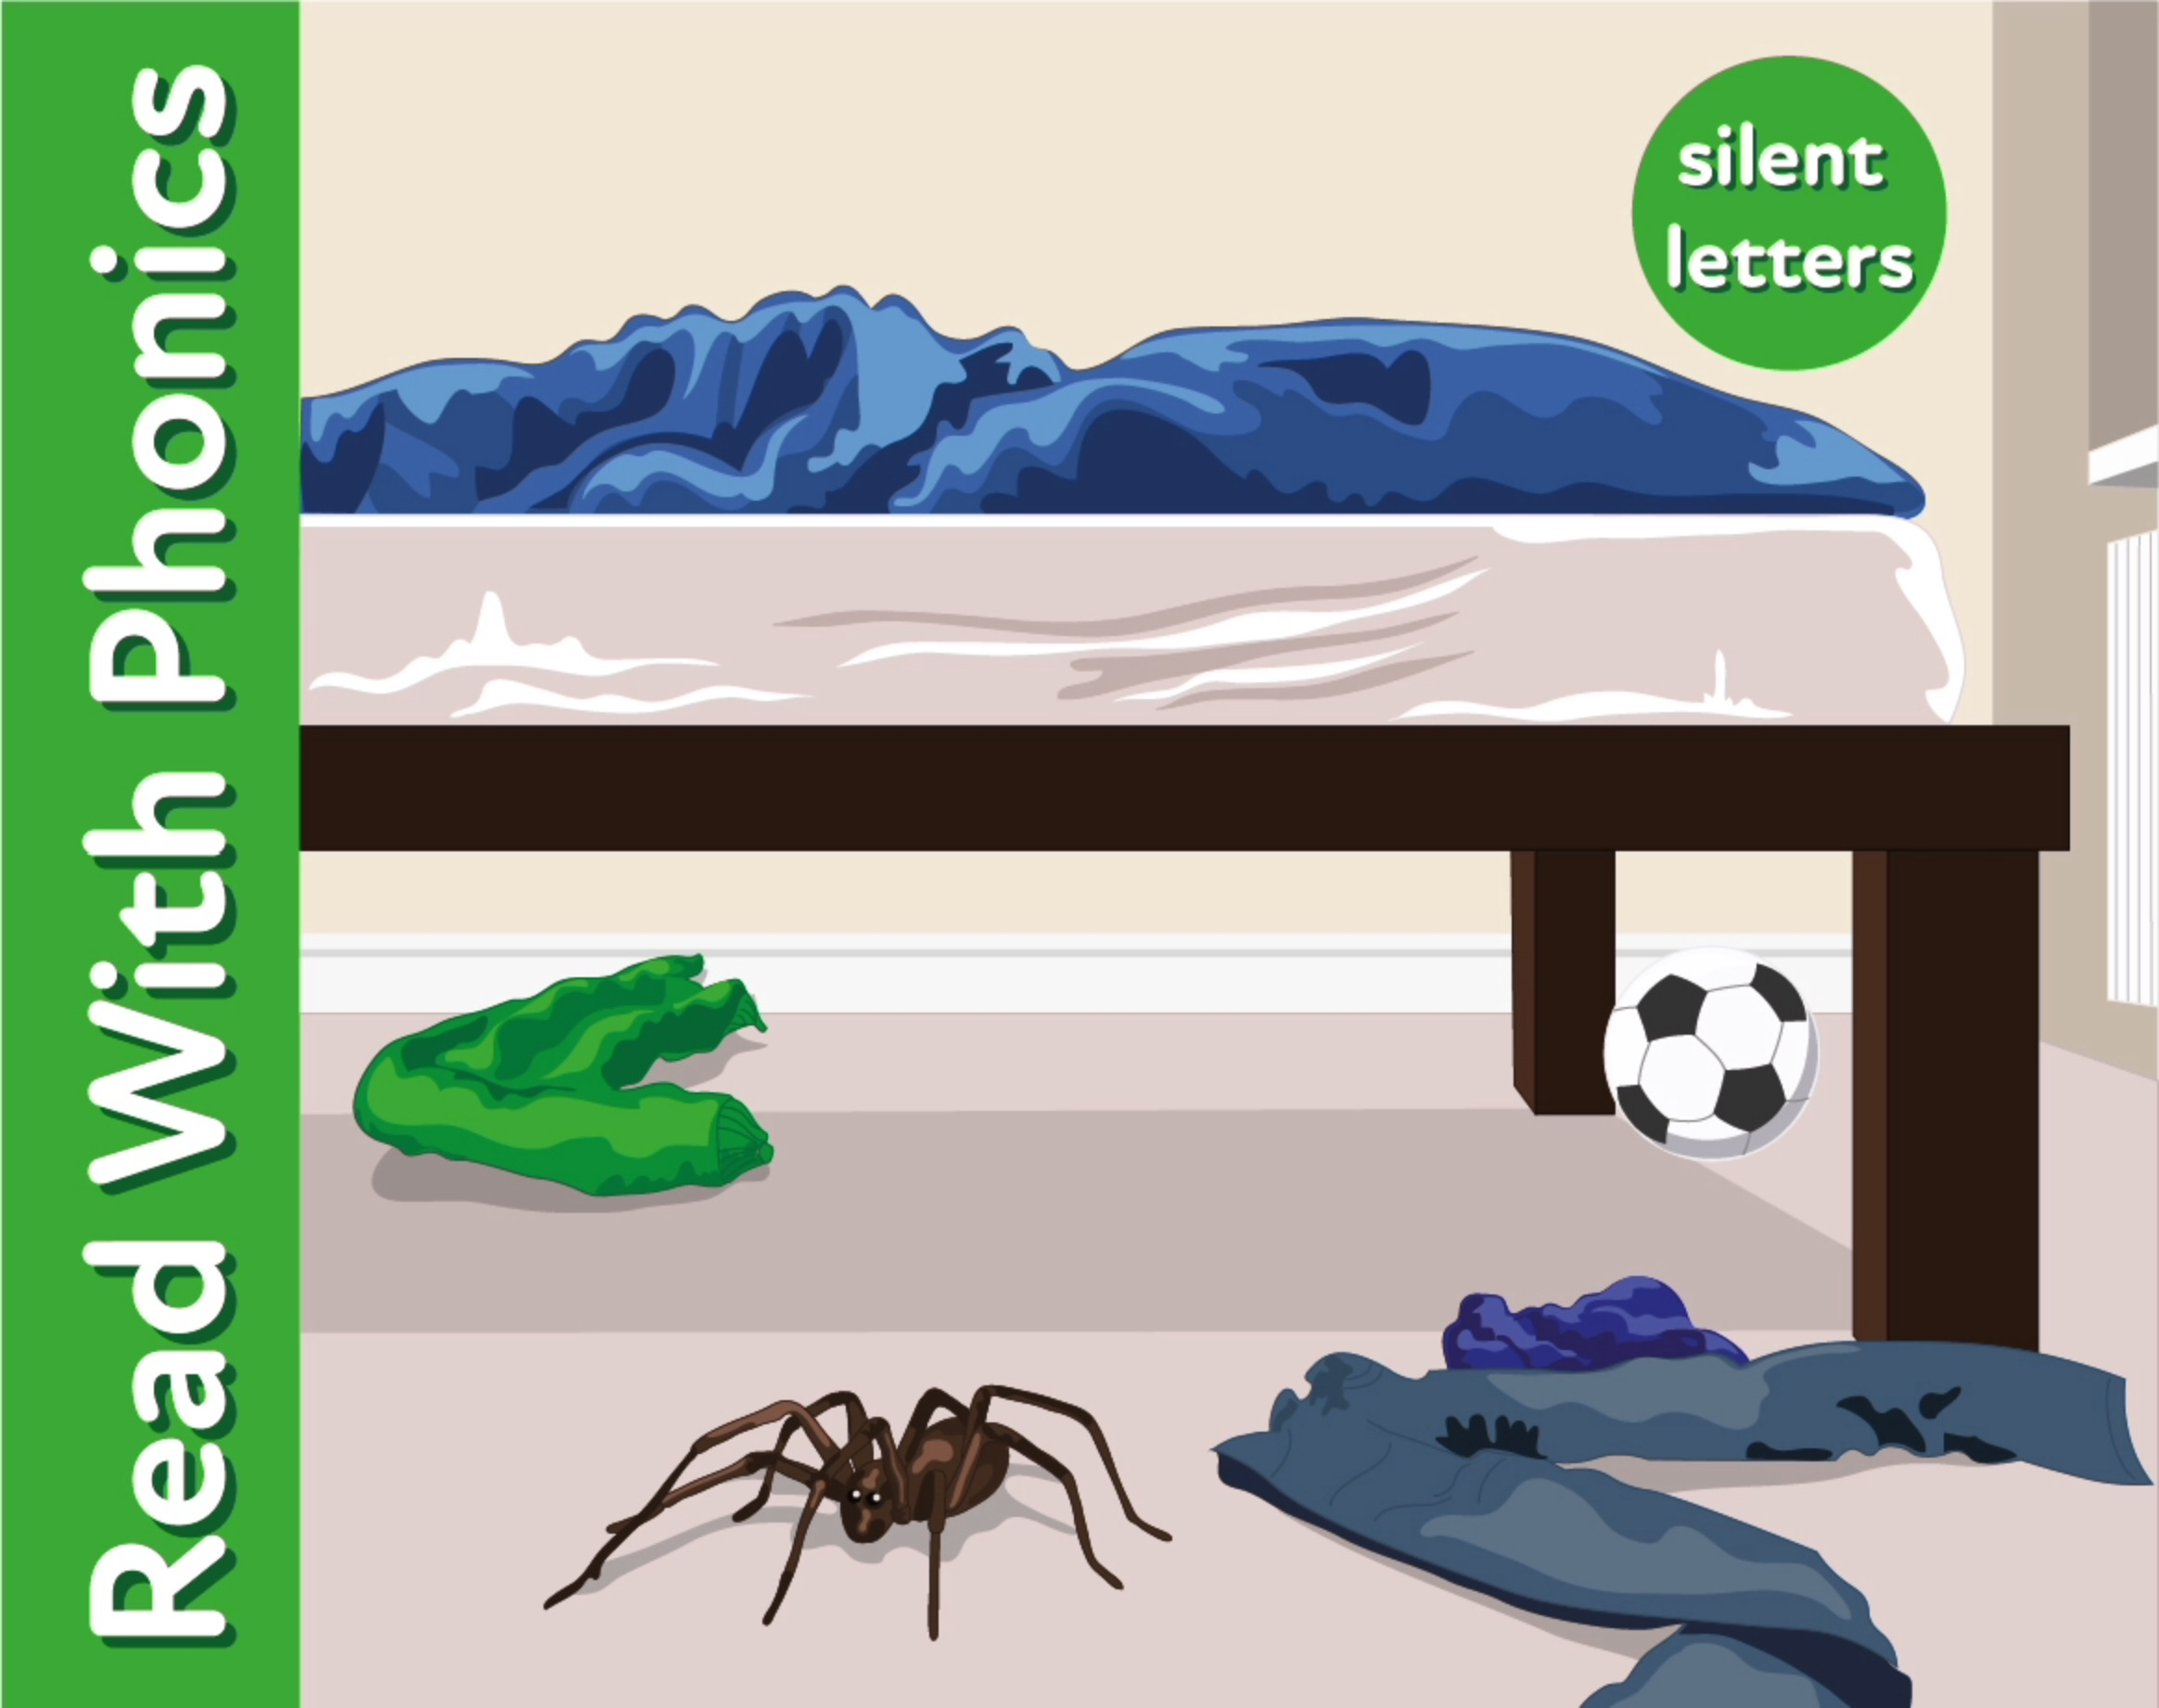 The Monster Near The Bed: Learn Silent Letters